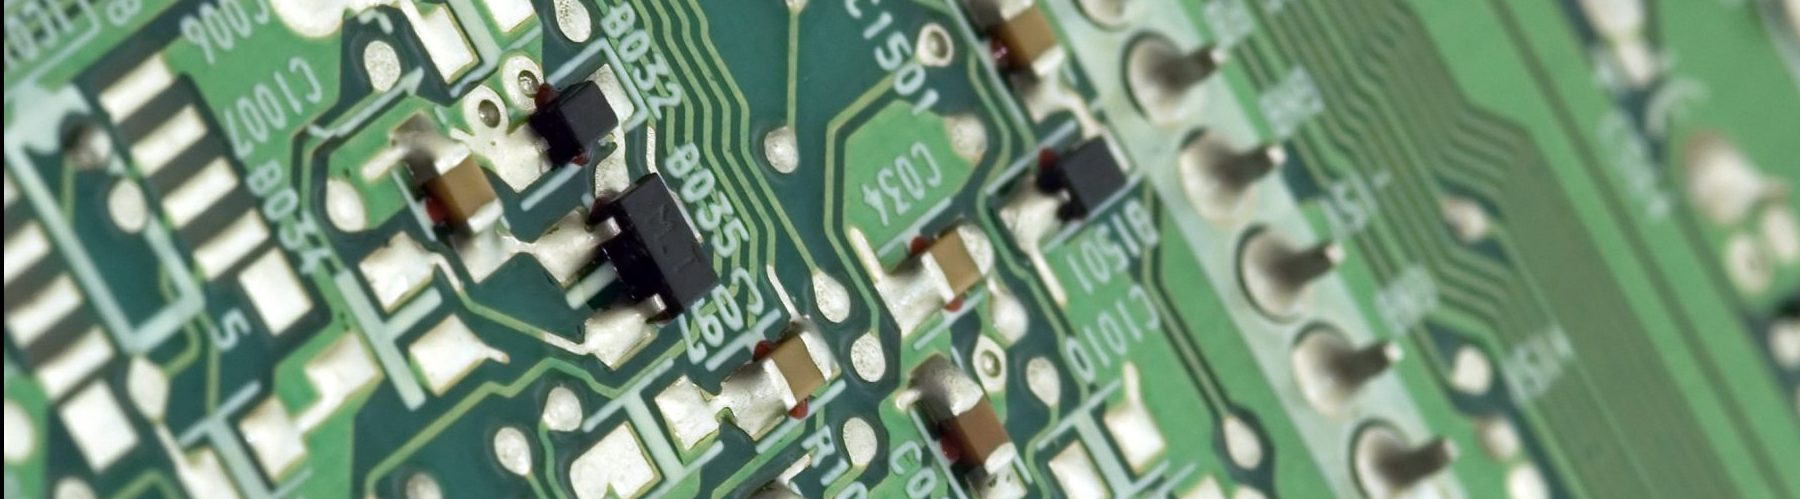 Electronic circuit board and components